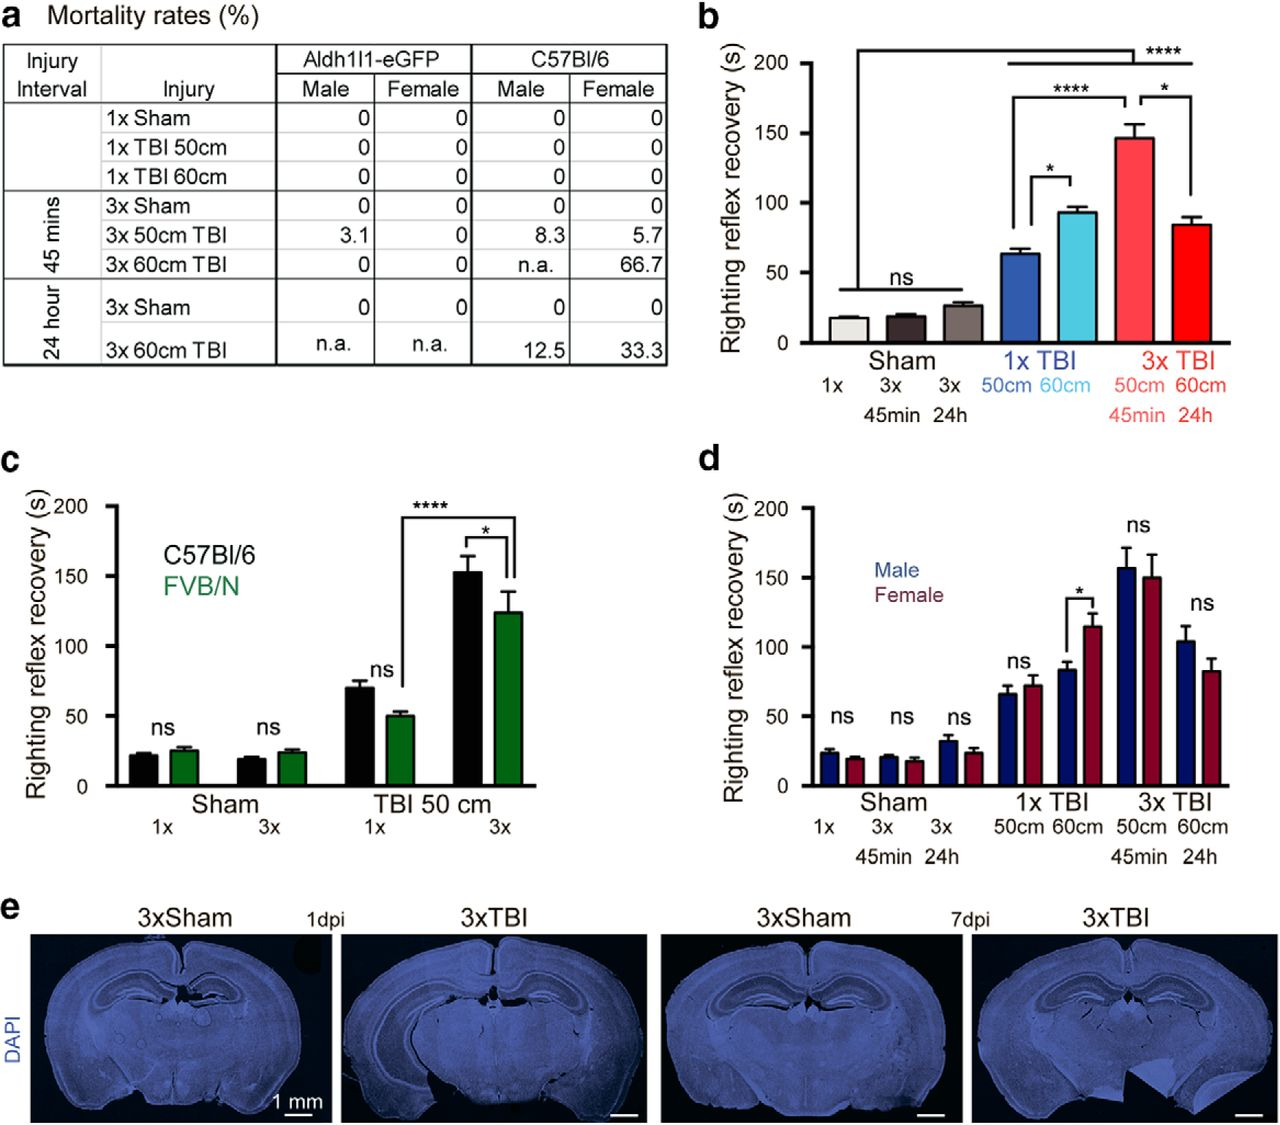 Repetitive Diffuse Mild Traumatic Brain Injury Causes an Atypical